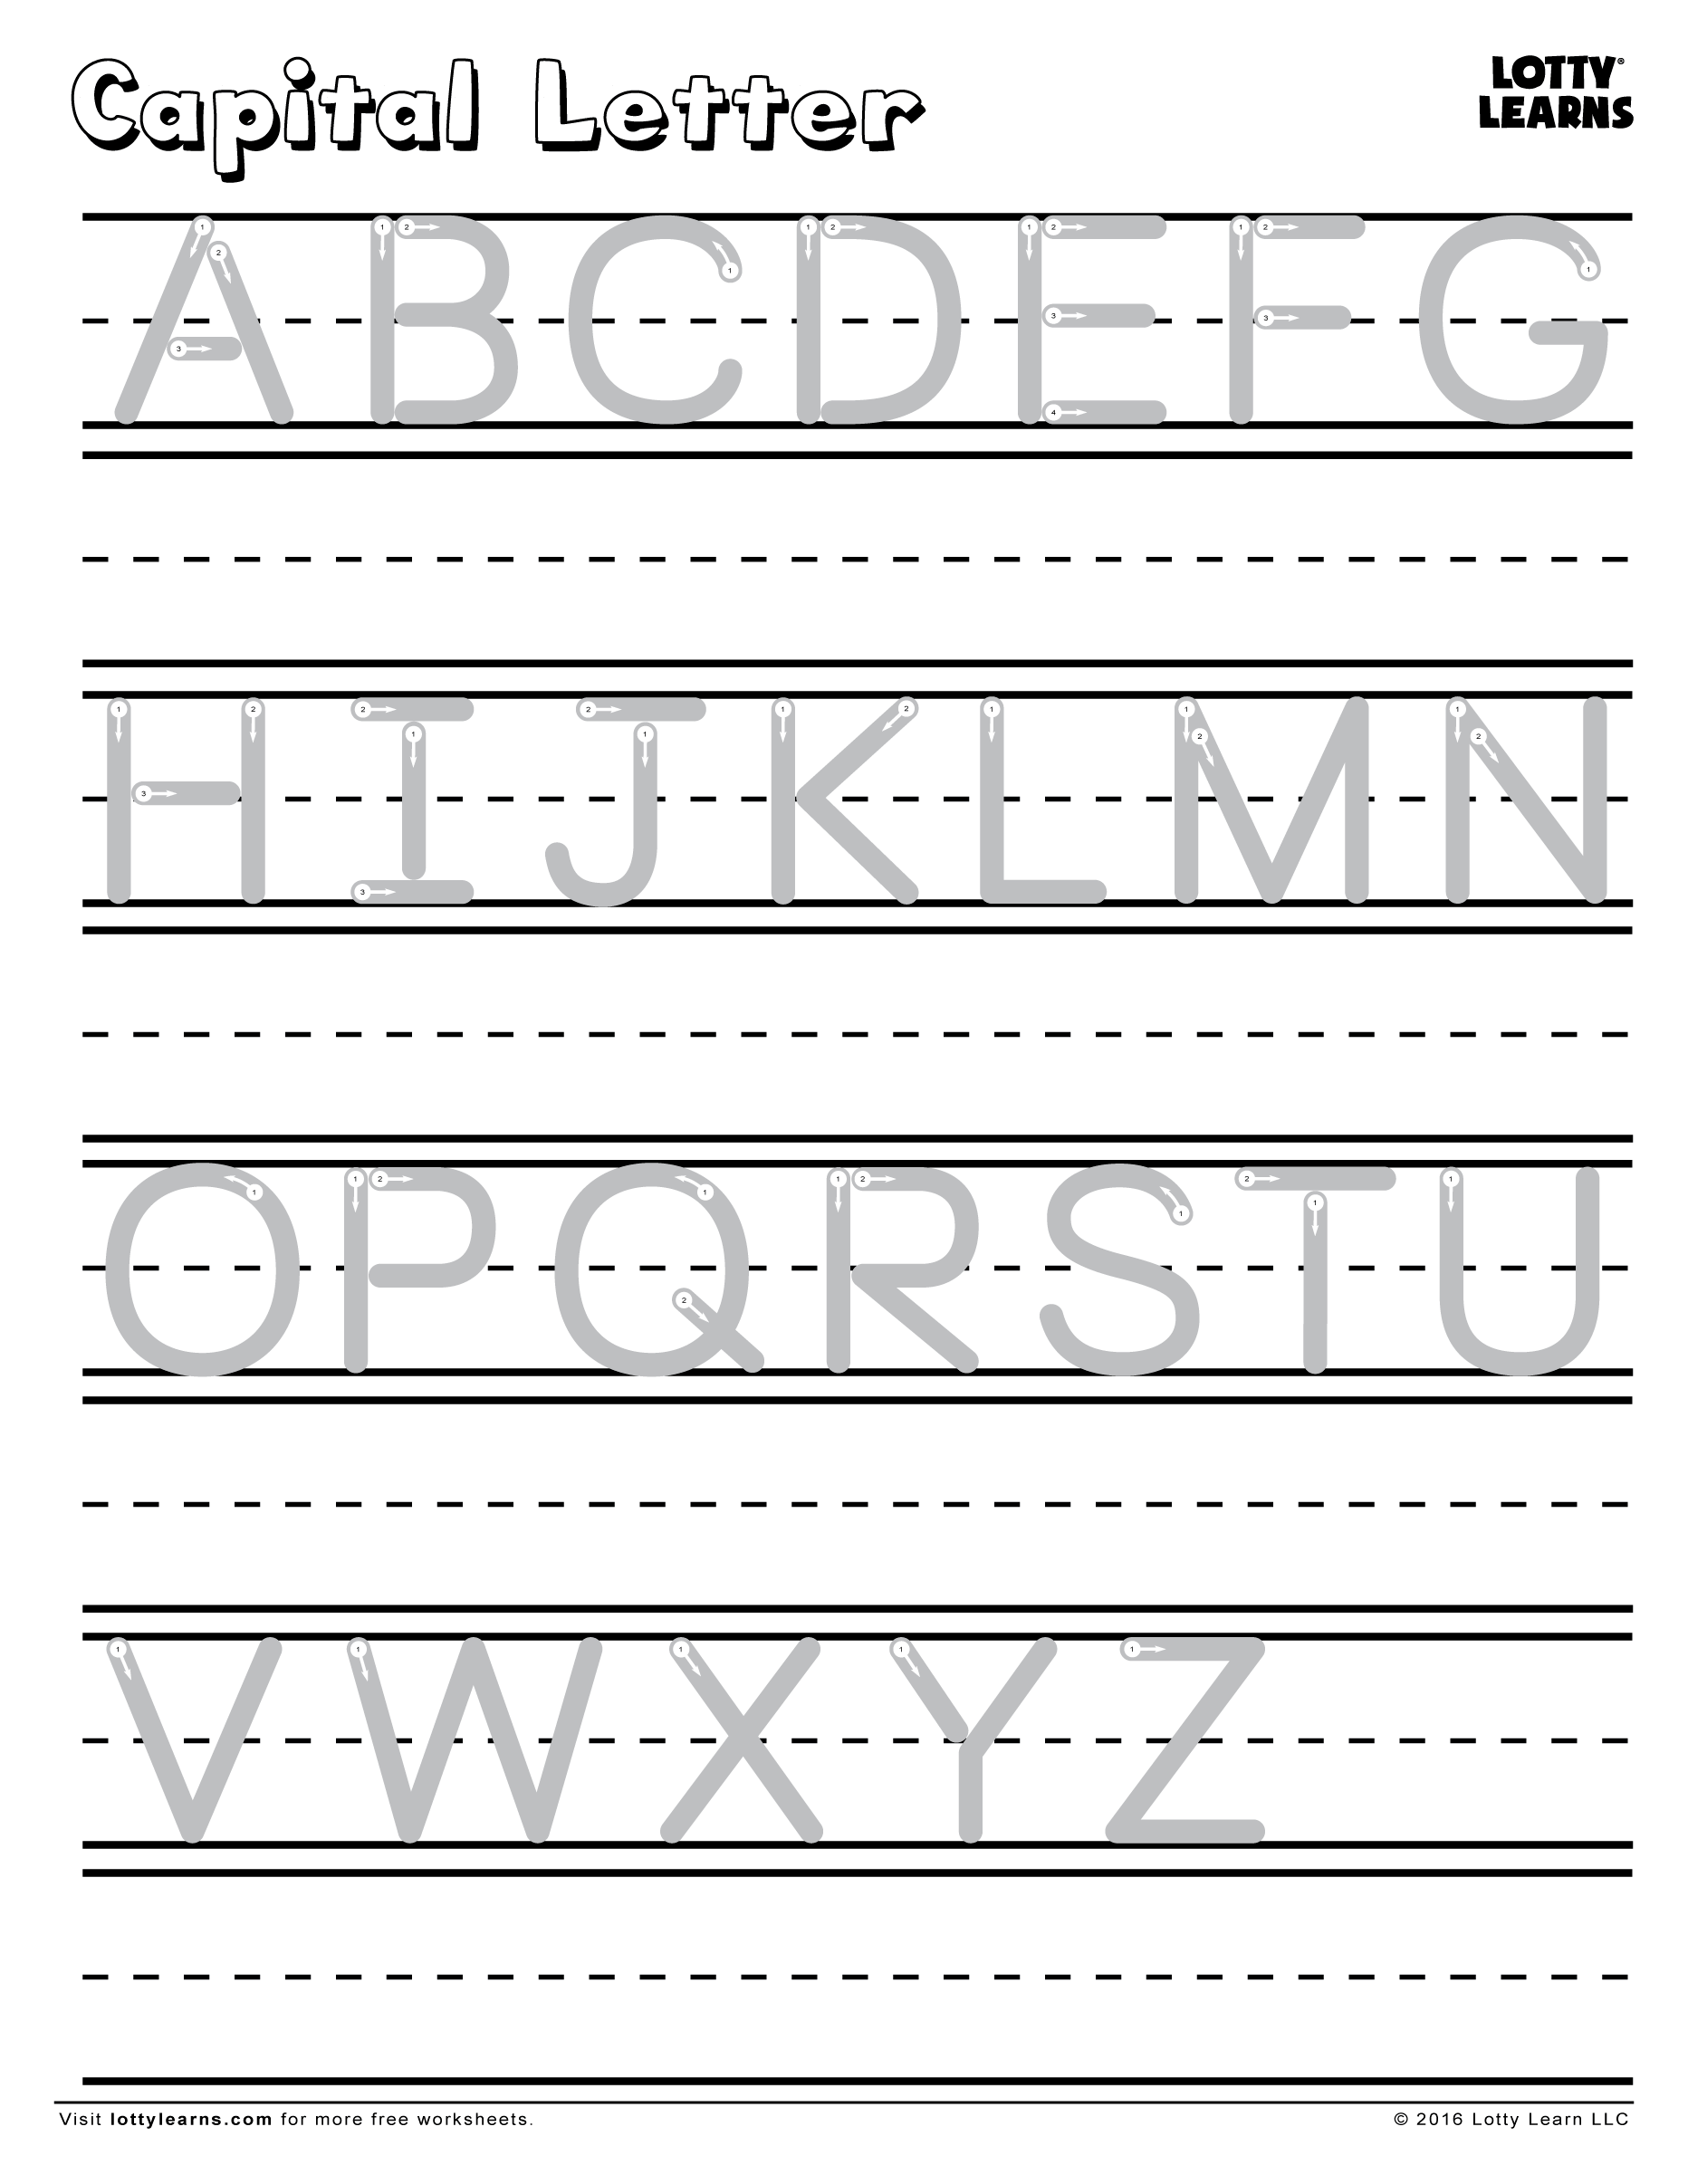 medium resolution of Capital Letter A-Z   Lotty Learns   Capital letters worksheet